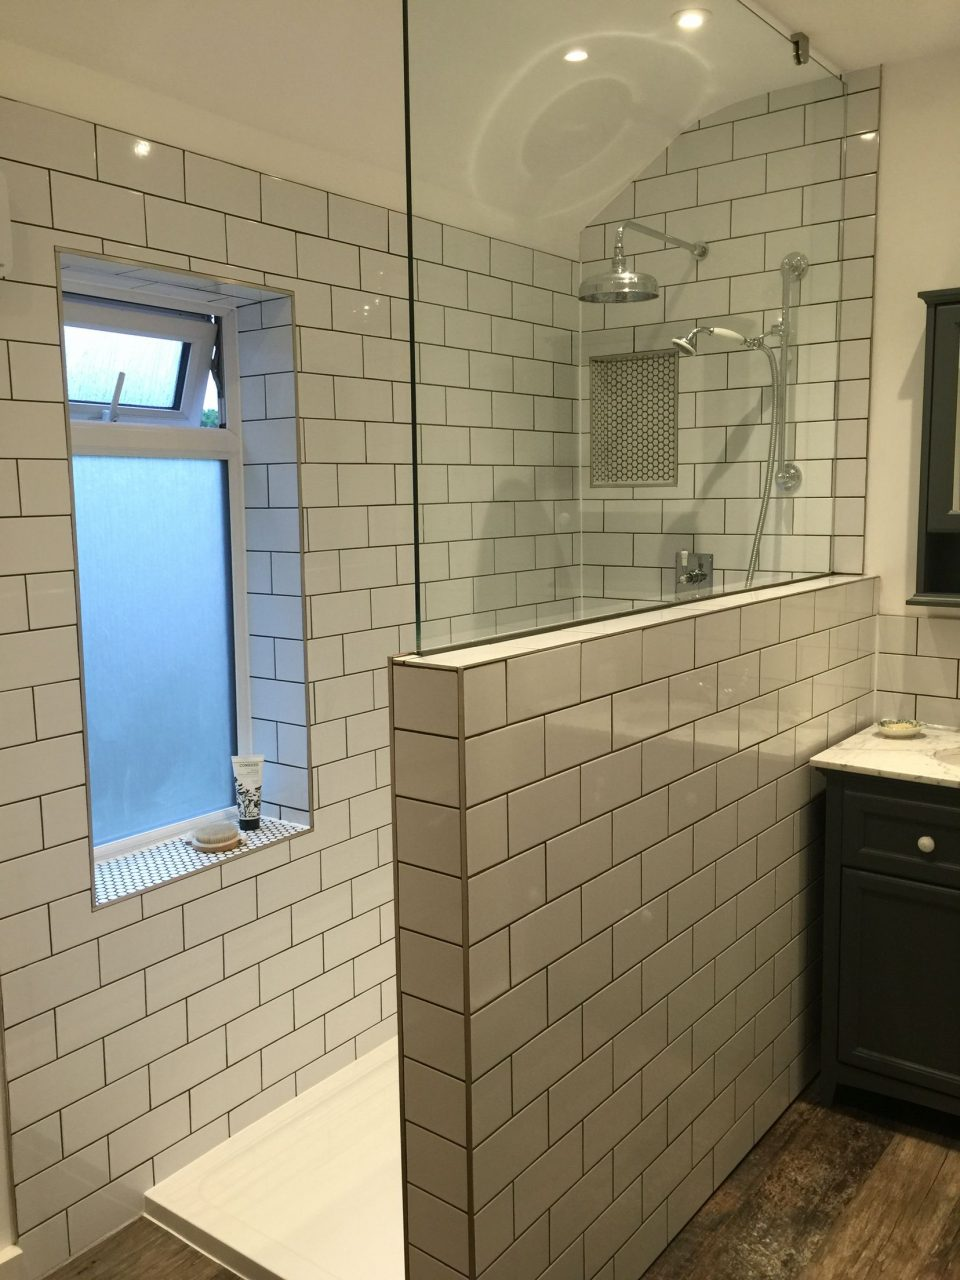 Our New Bathroom With Metrosubway Tiles And Dark Grey Grouting With